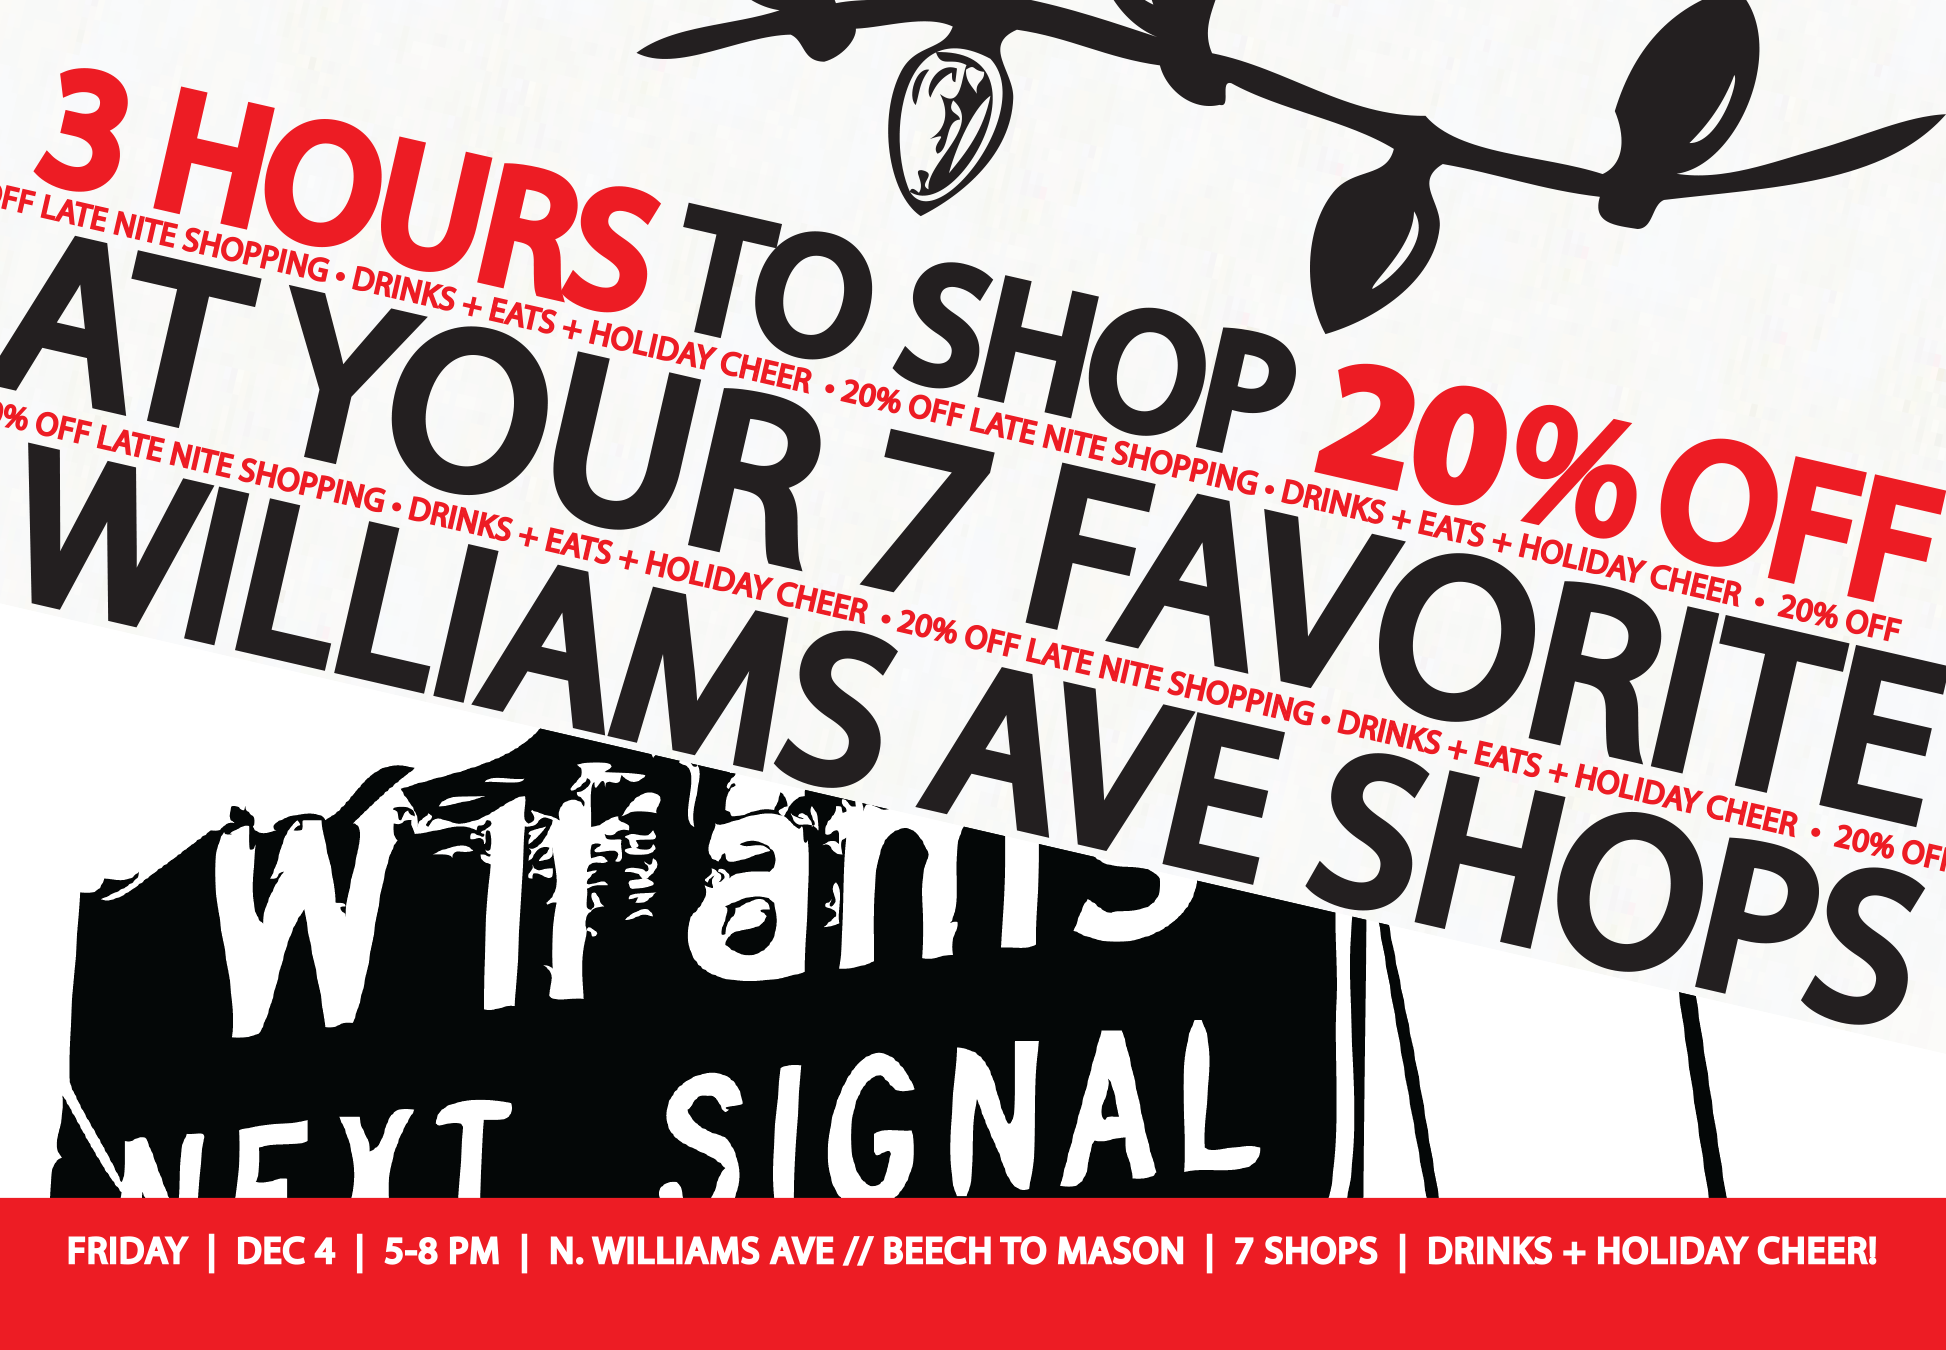 shop late on williams and save 20%